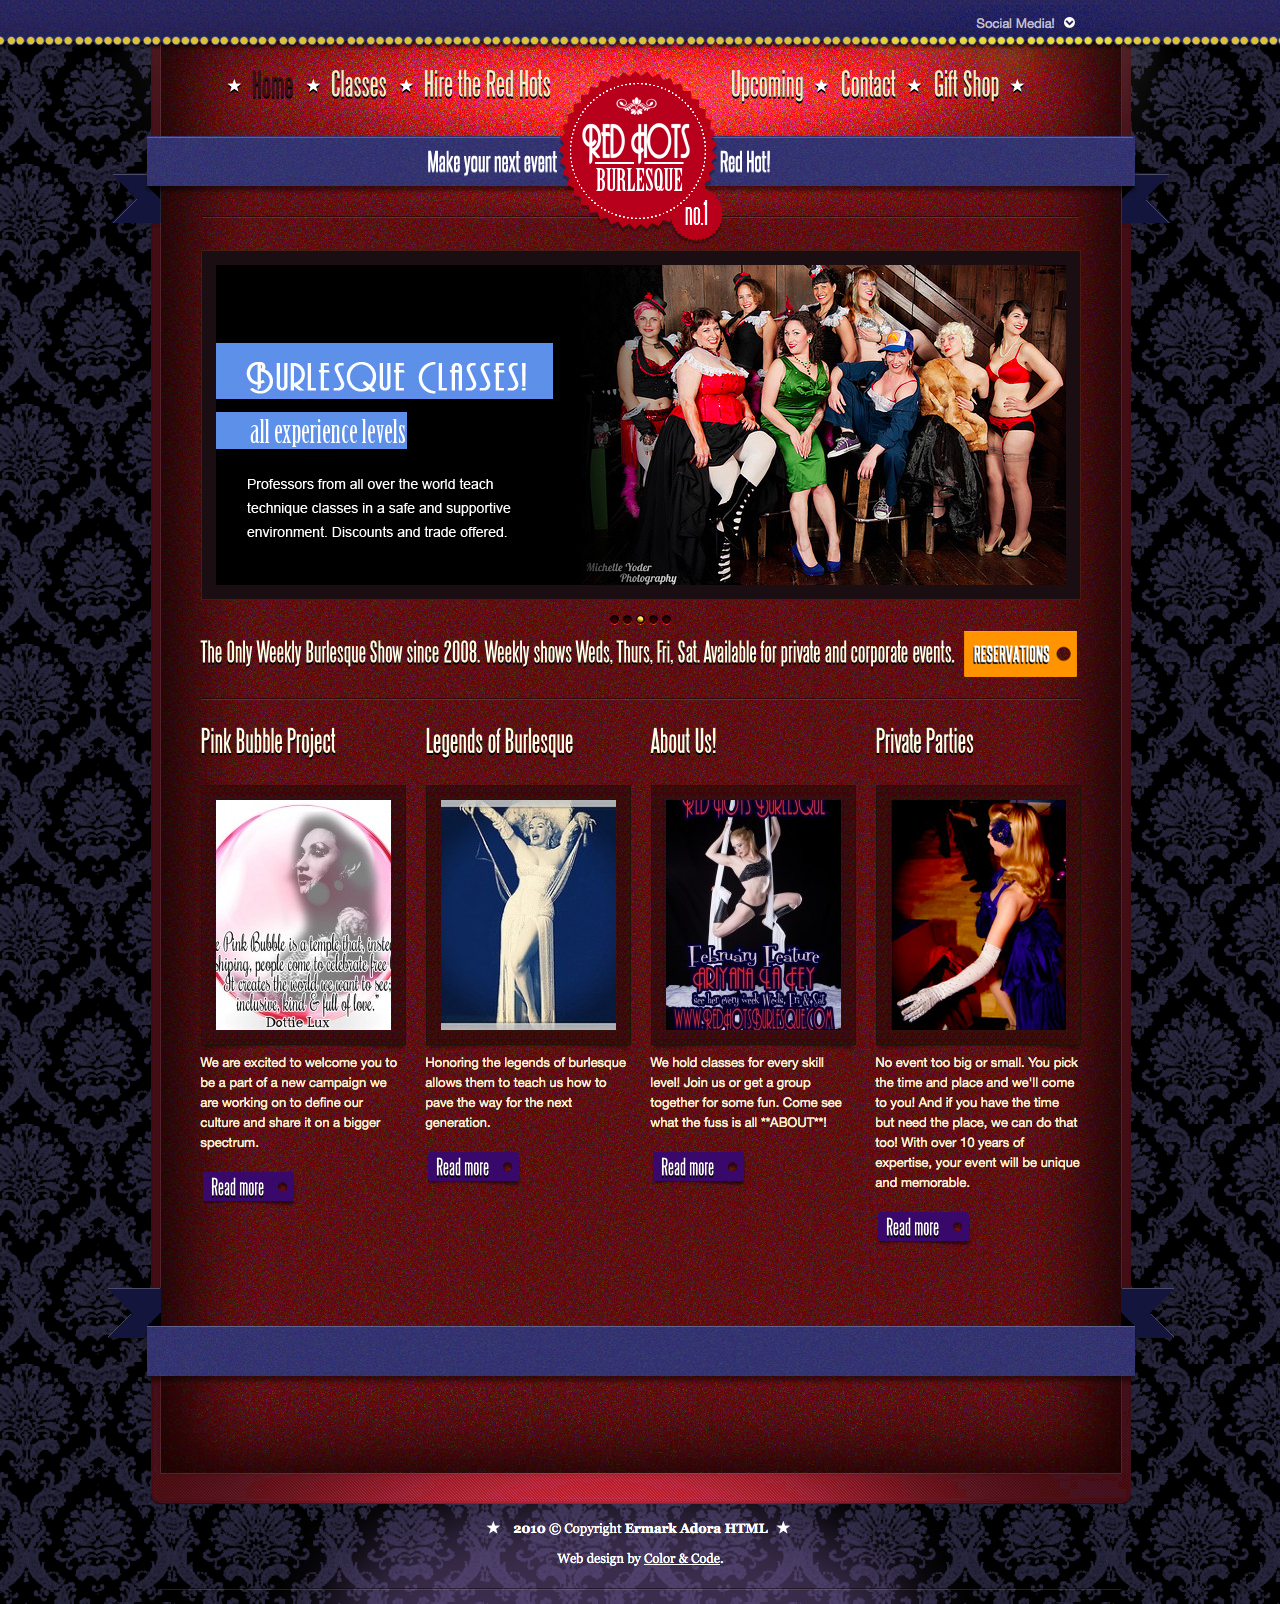 Red_Hots_Burlesque_Make_your_next_event_Red_Hot